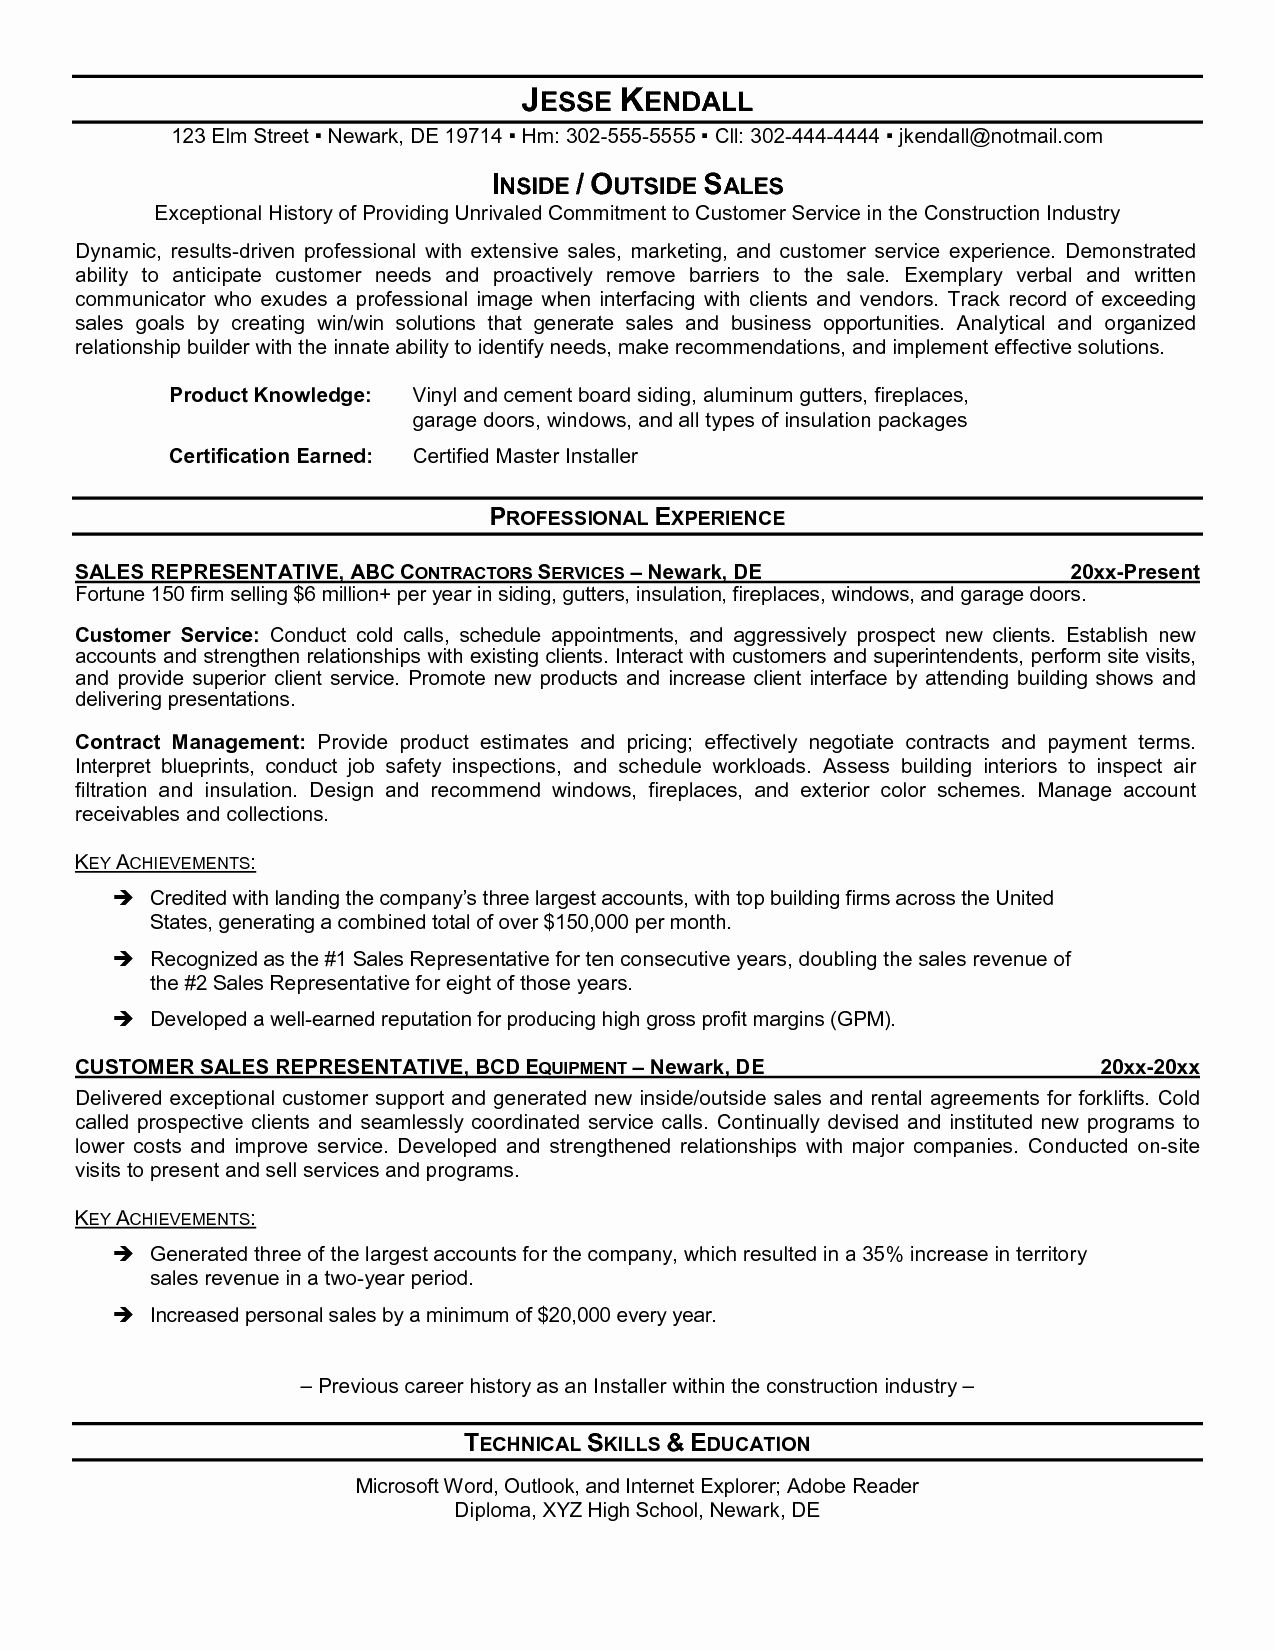 representative resume objective fresh outside examples google search business builder for Resume Resume Builder For Sales Jobs